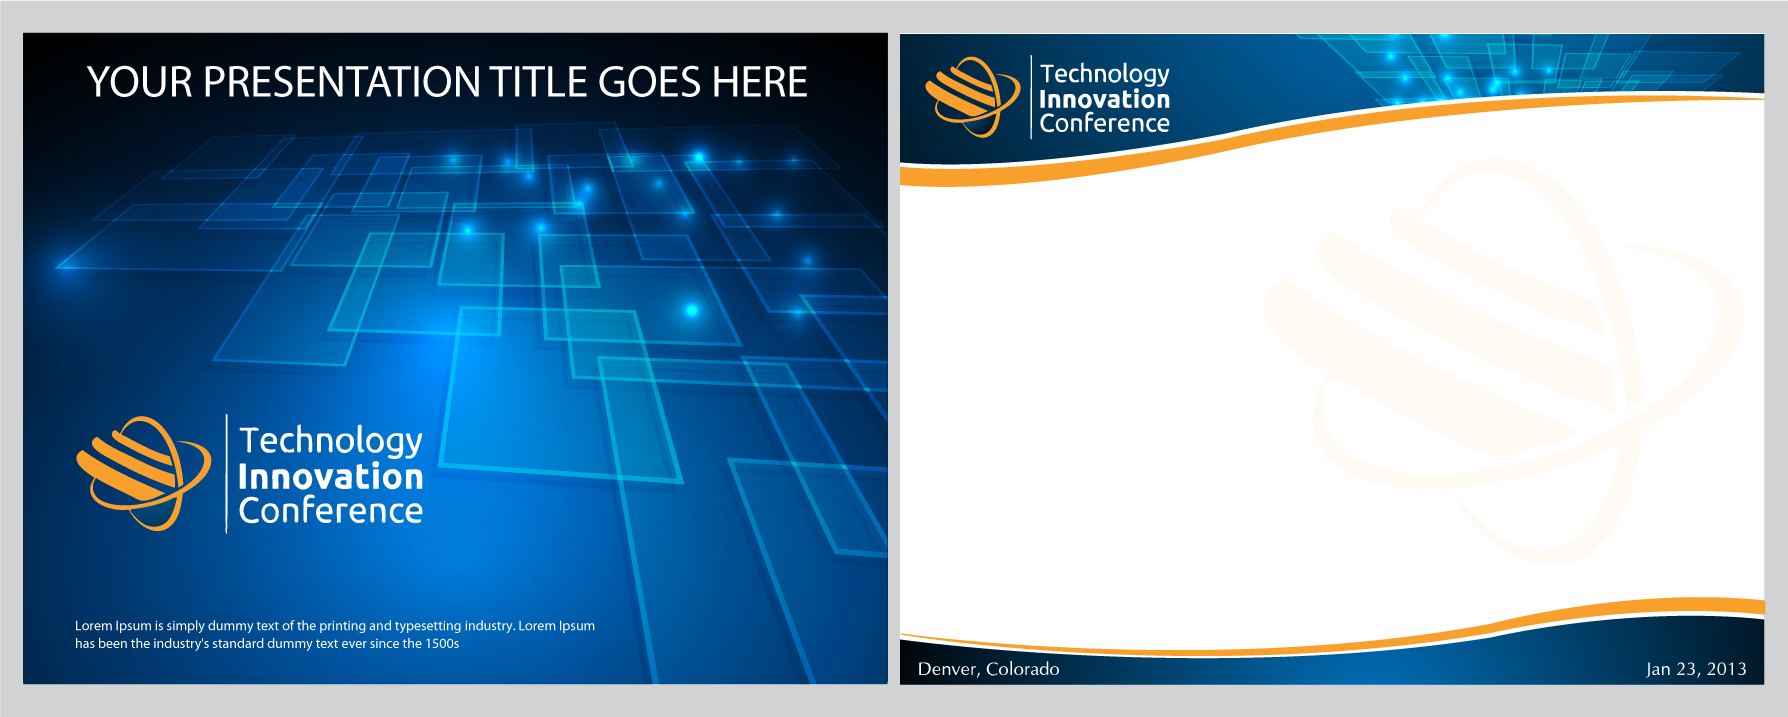 Create the next PowerPoint Template for Technology Innovation Conference